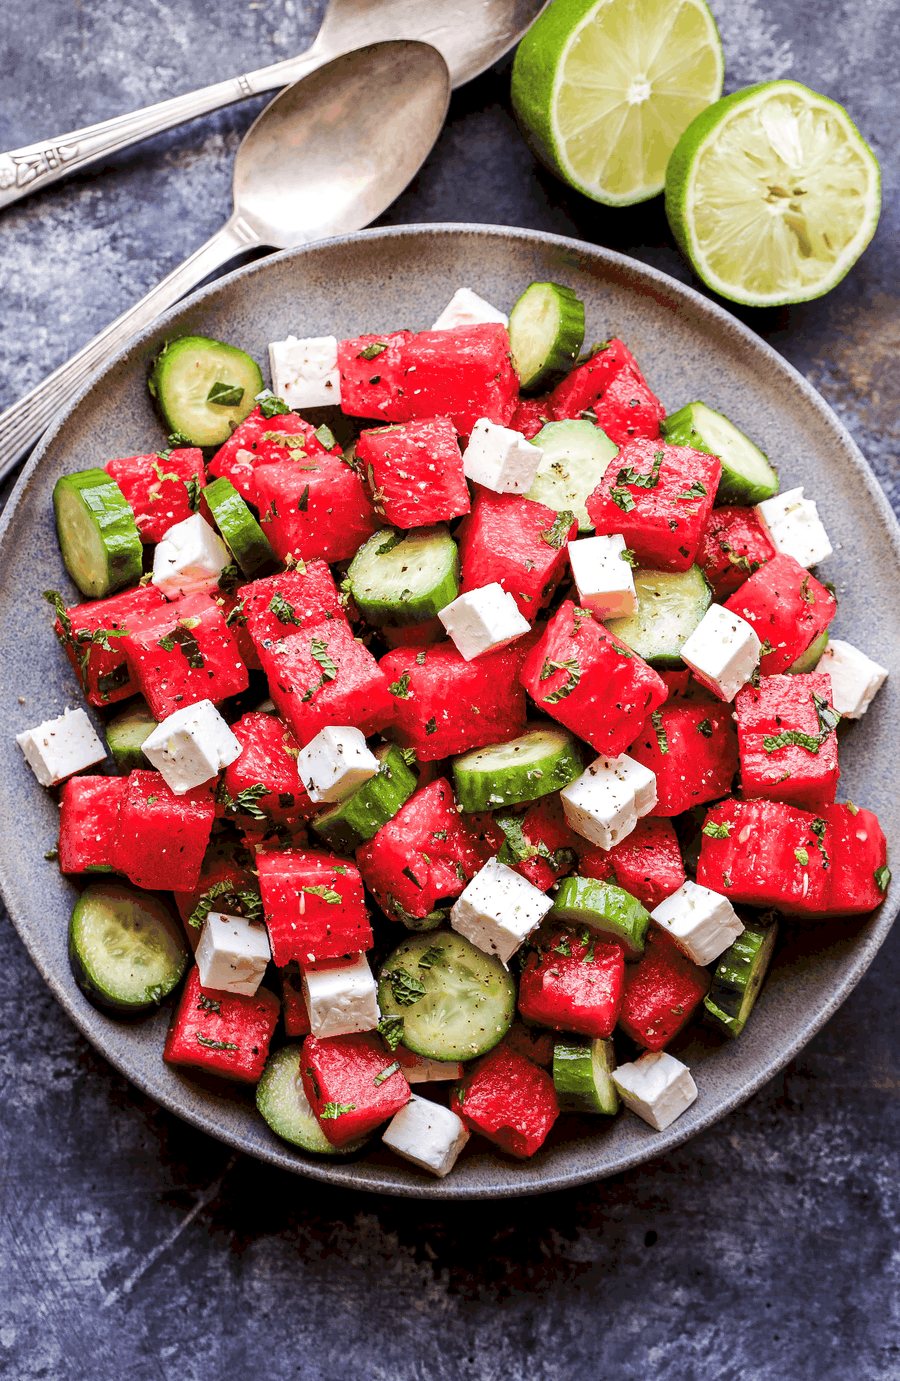 Watermelon salad with cucumber and feta cheese.